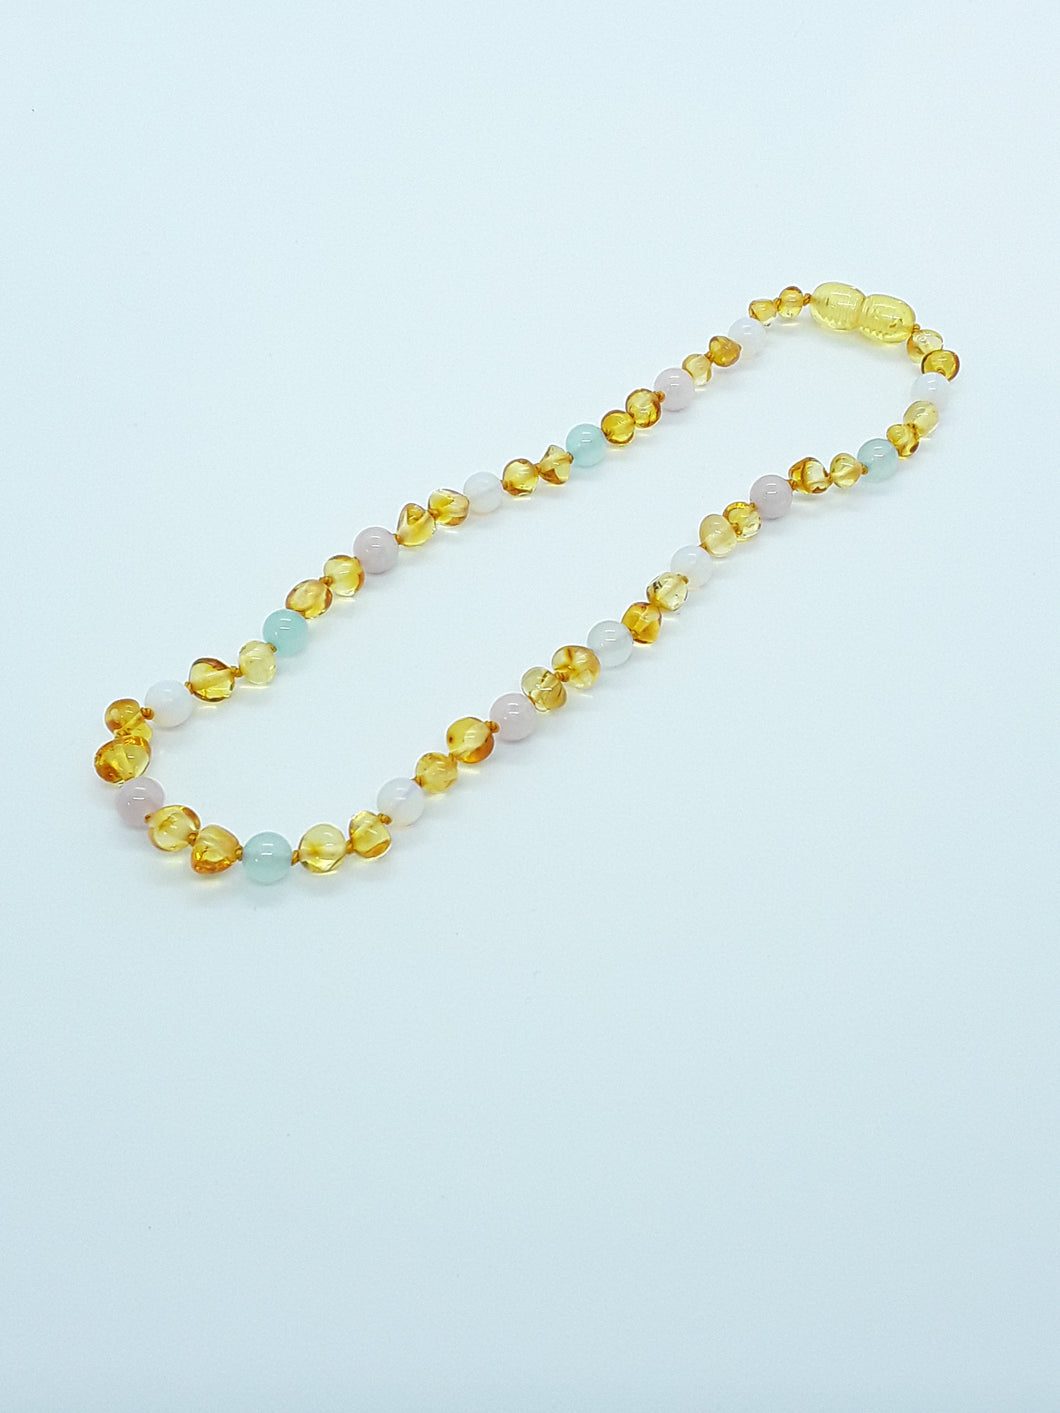 Yellow Amber & Quartz with Pastel Semi-Precious Stones Necklace